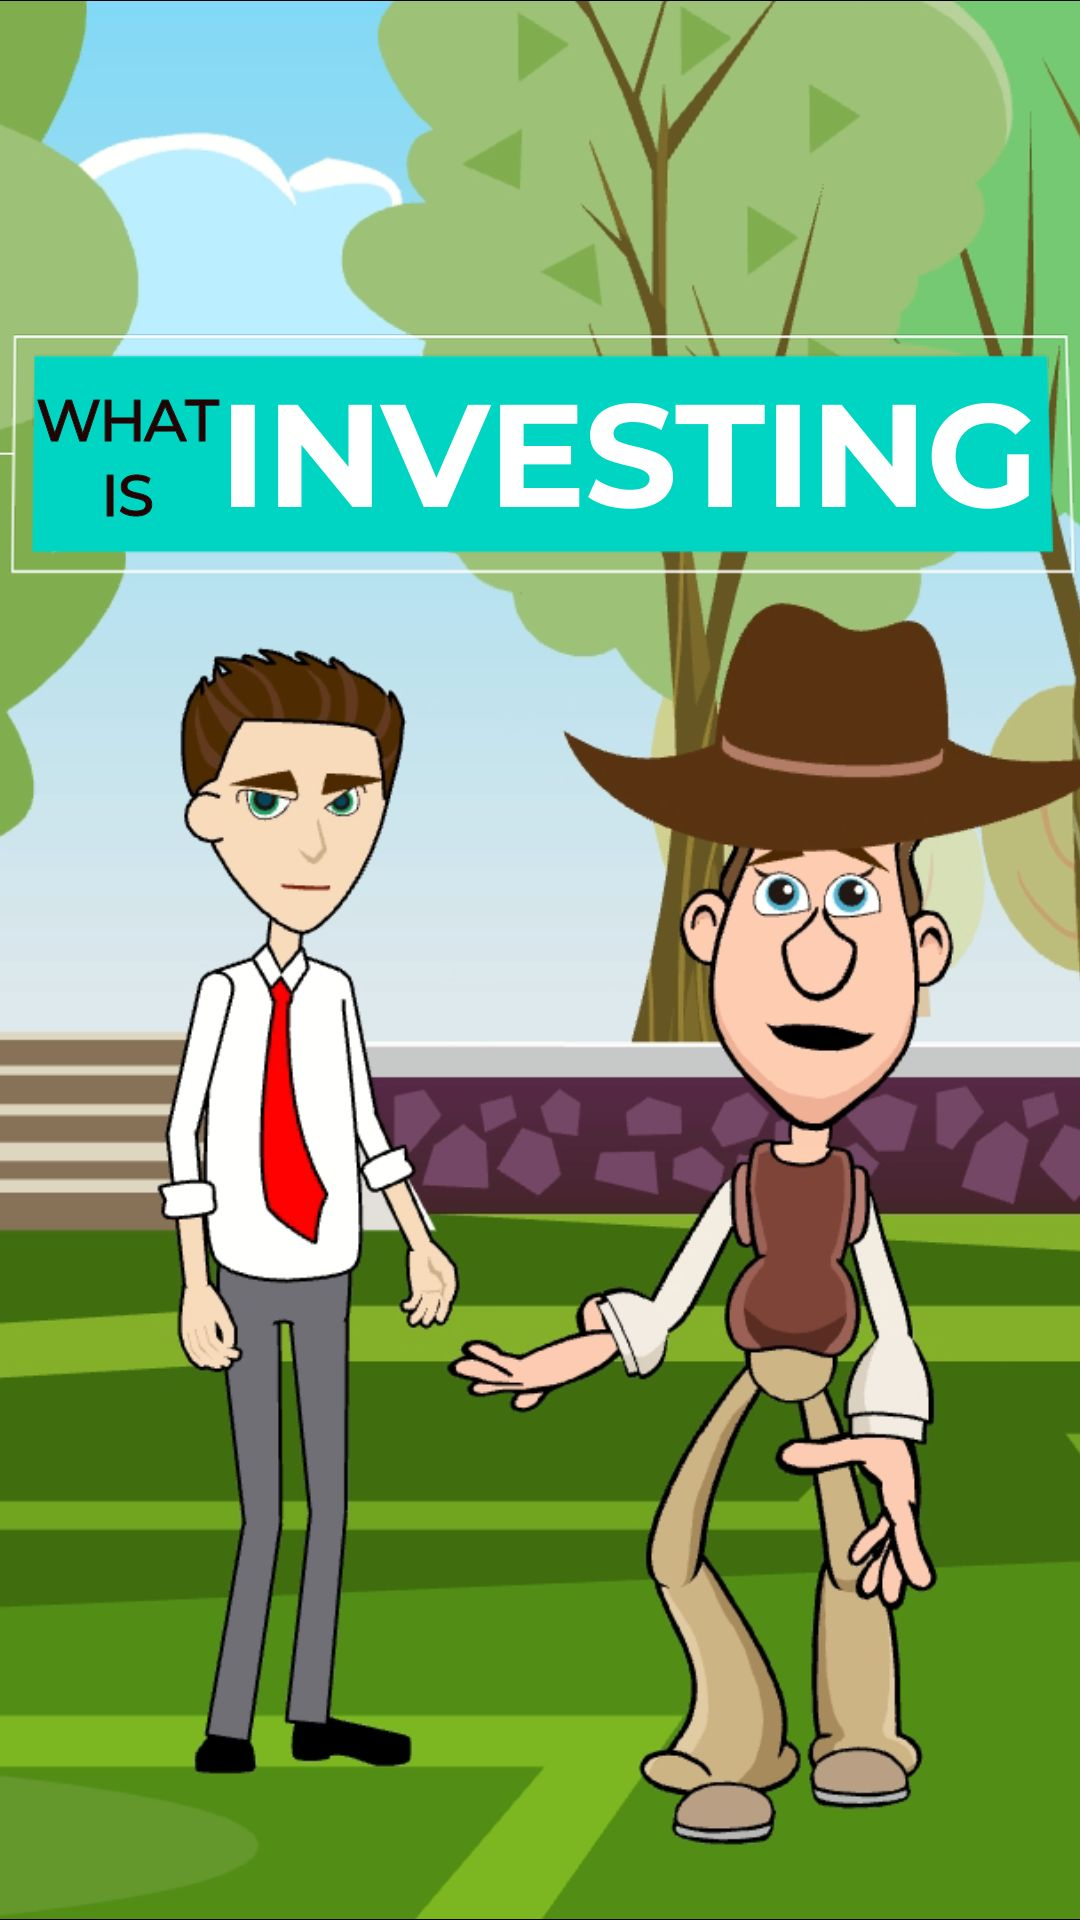 236 What is Investing - Shorts